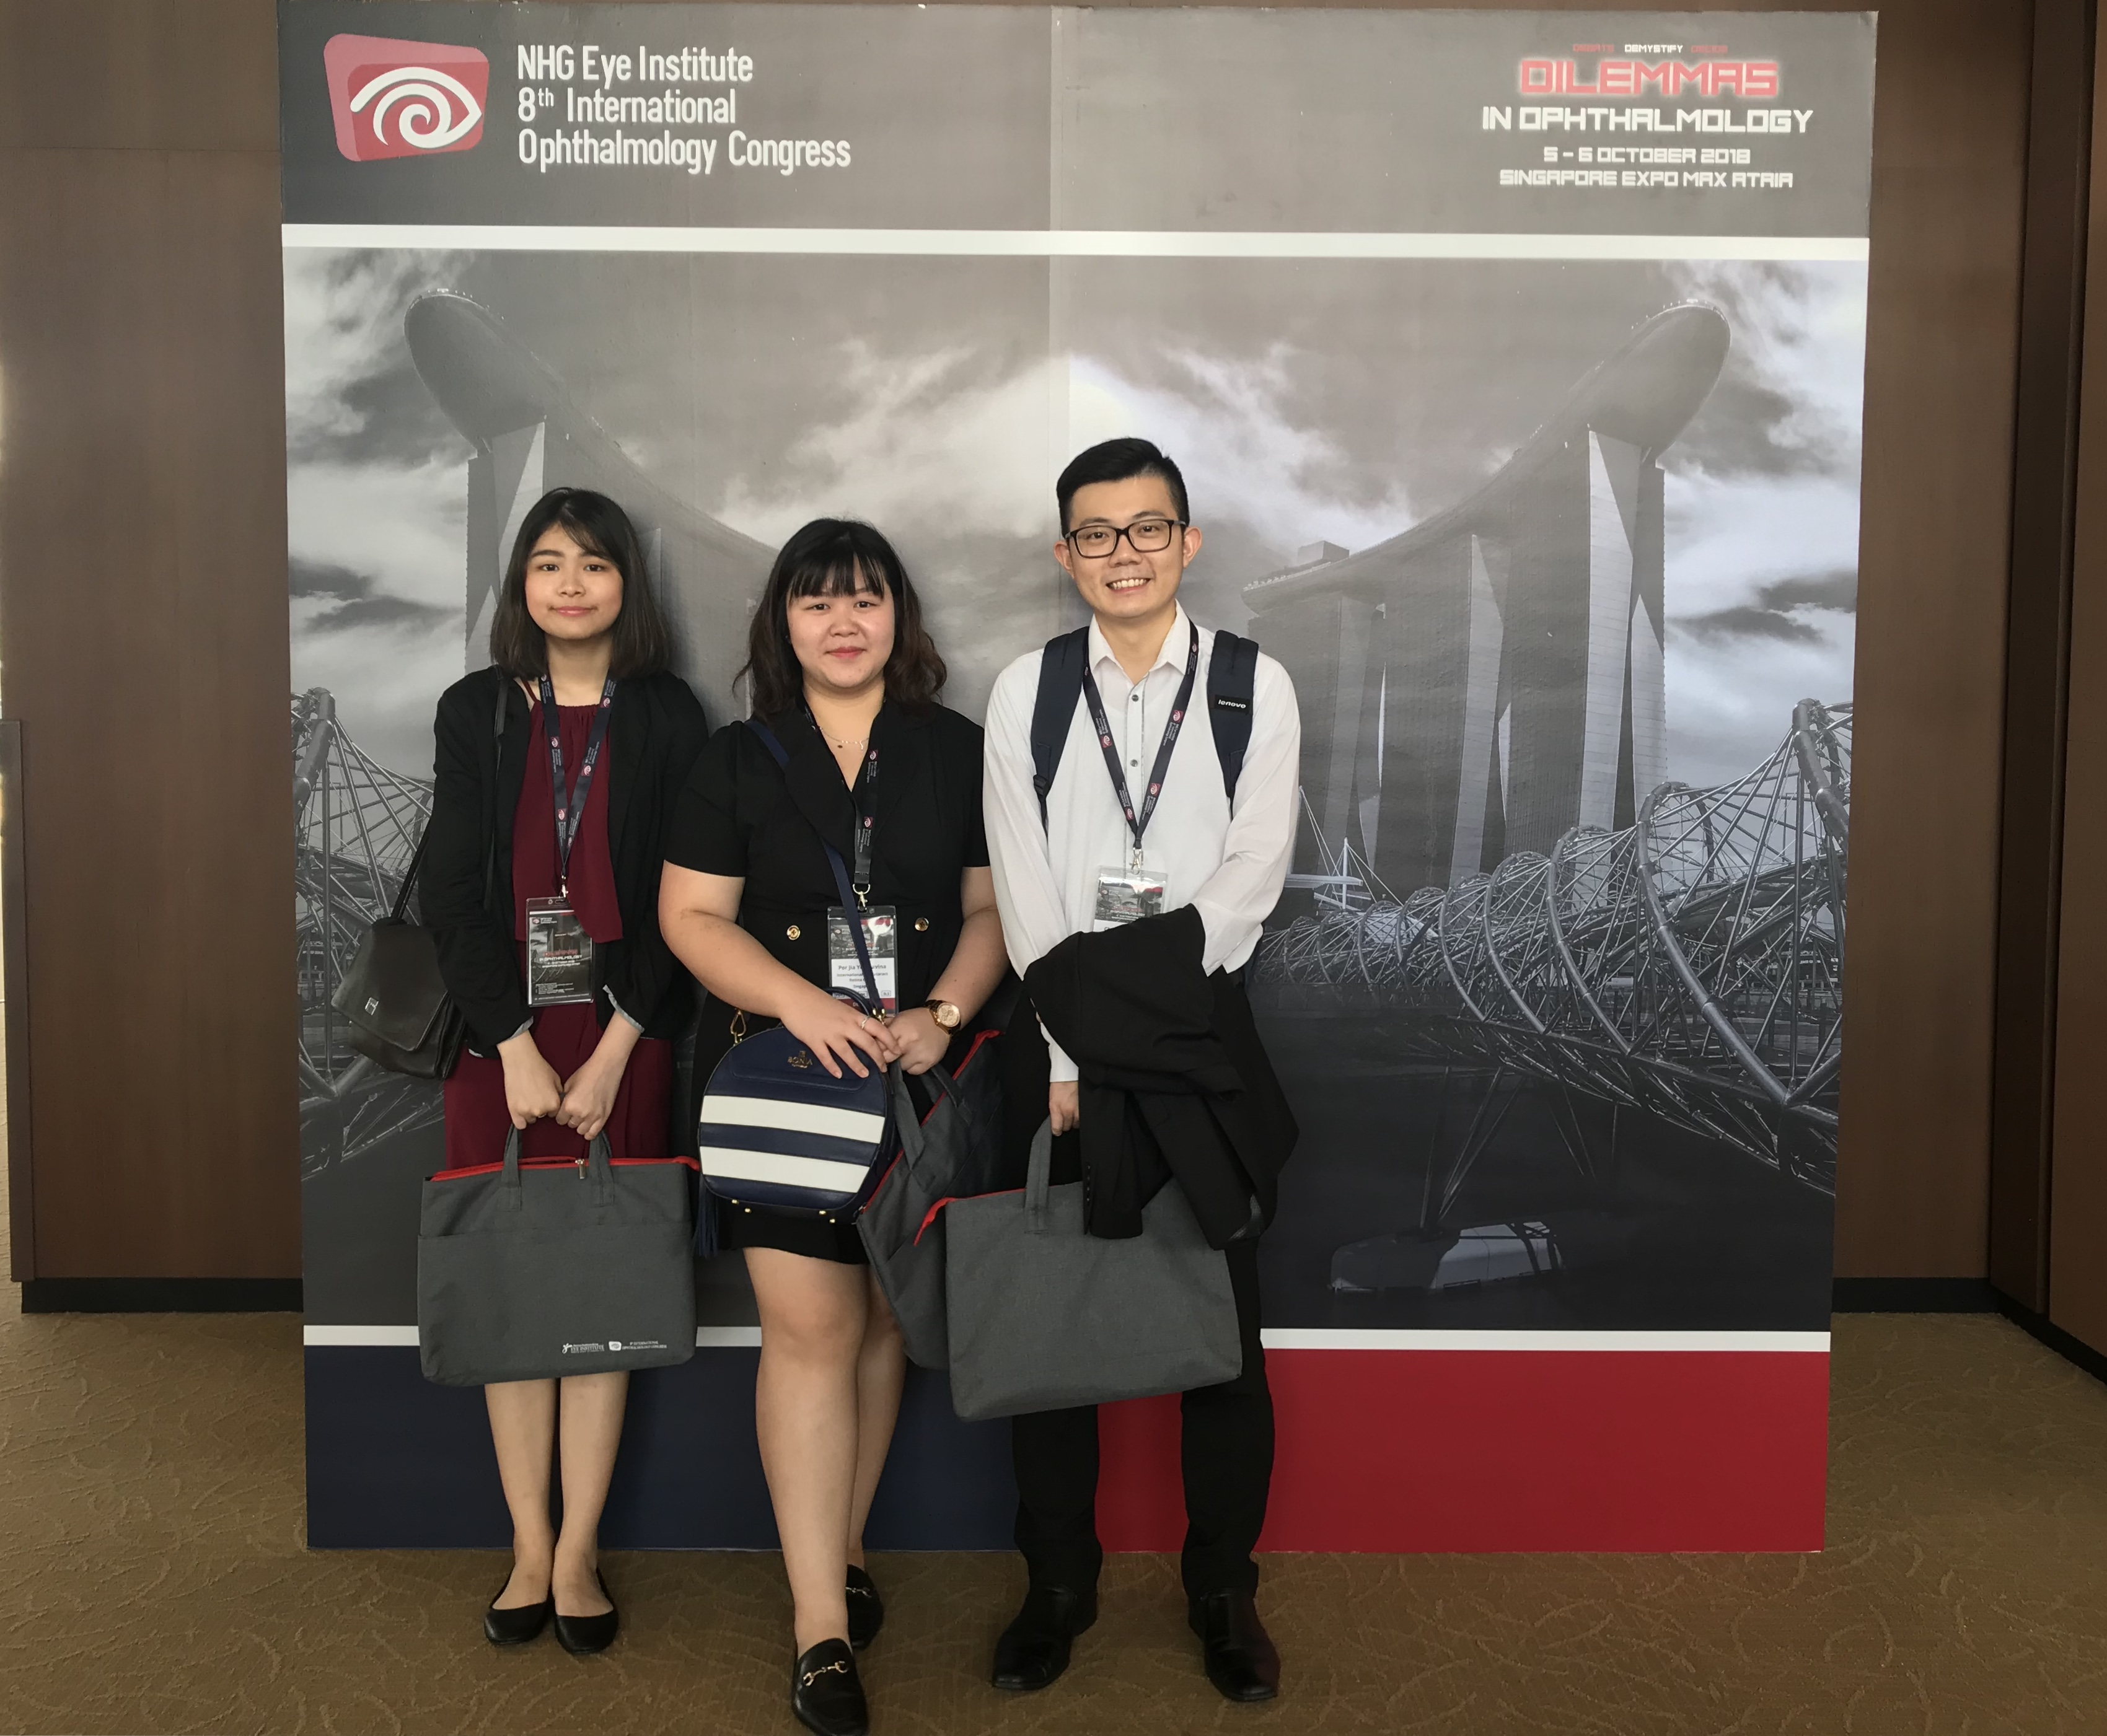 International Eye Cataract Retina Centre optometrists (L-R) Ms Goh Jiah Ying, Ms Por Jia Yee Davina and Mr Chong Wee Hou at the 8th International Ophthalmology Congress in Max Atria, Singapore Expo on 5-6 October 2018